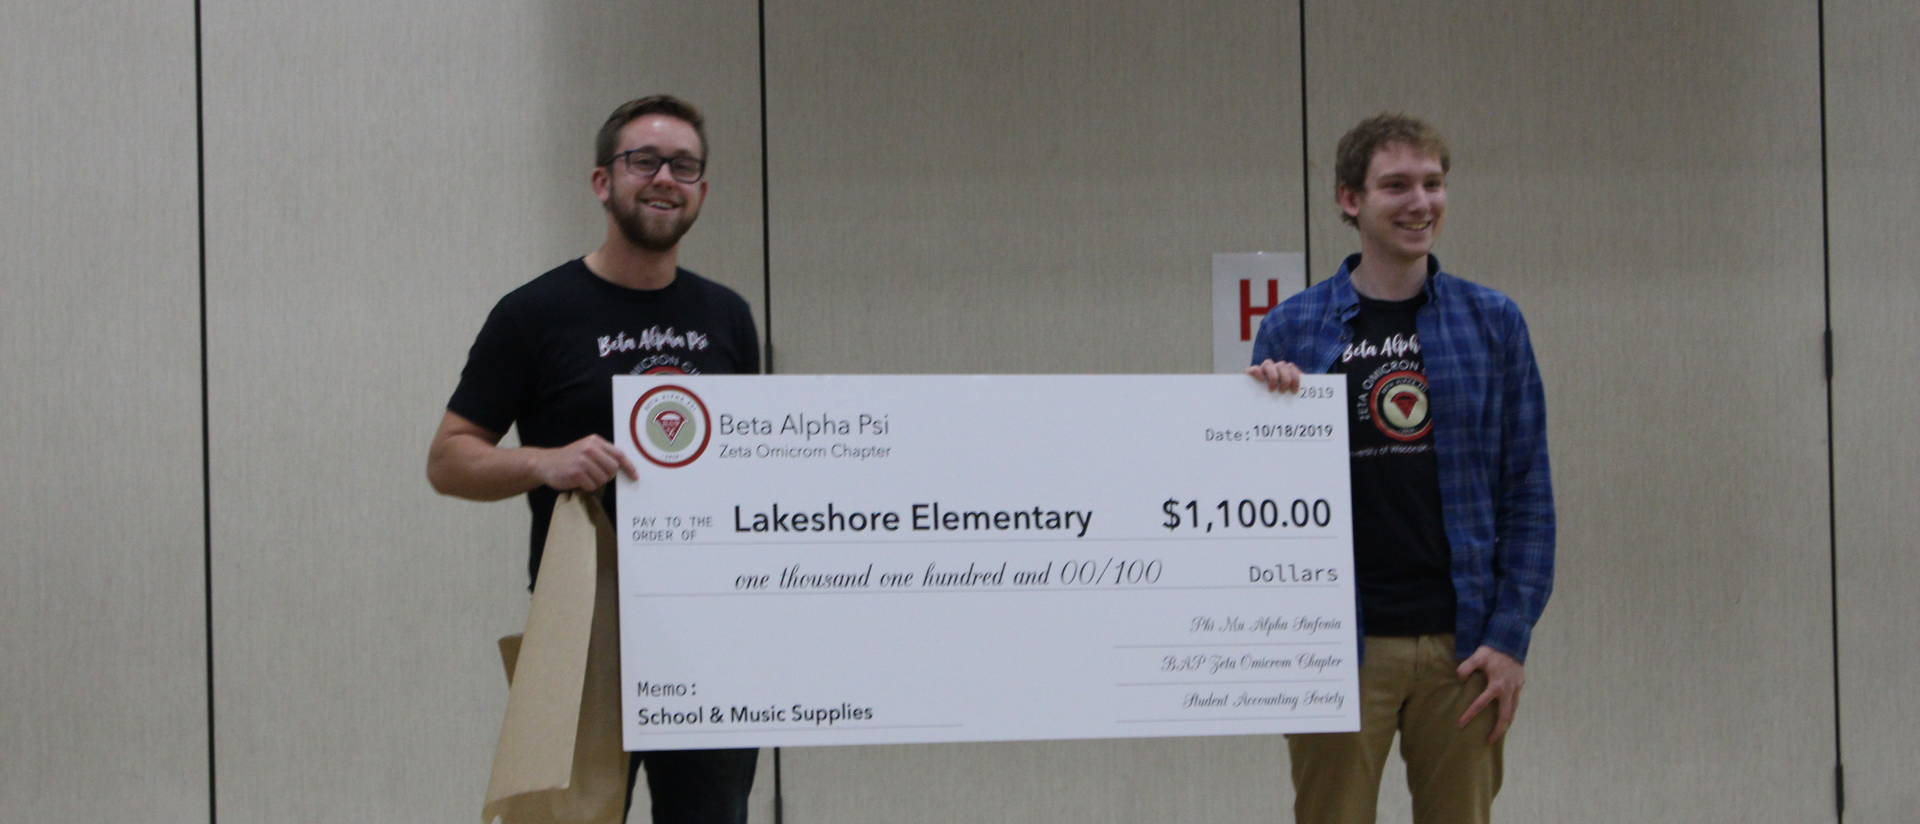 BAP donation to Lakeshore Elementary